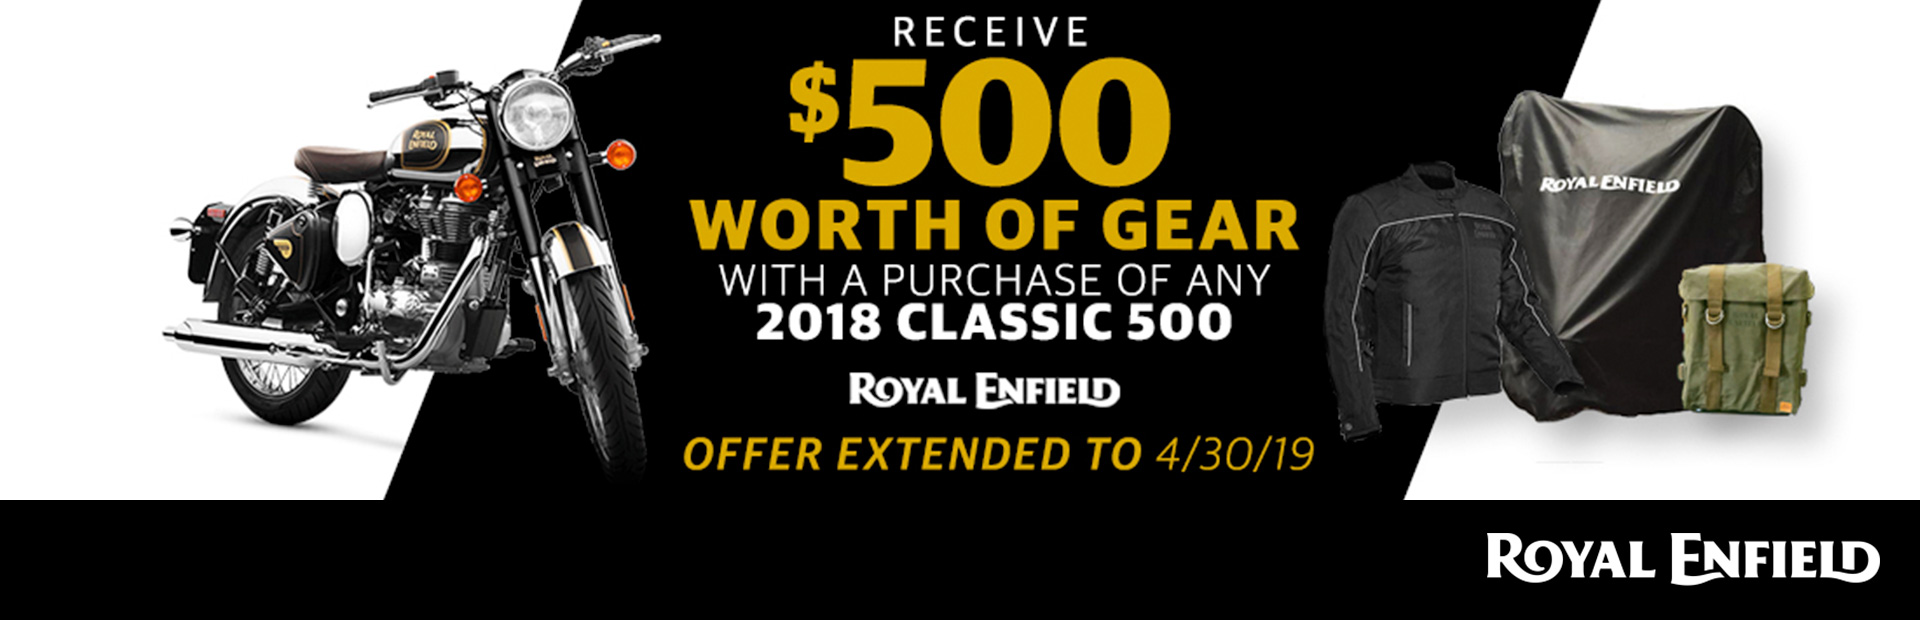 Royal Enfield: Get $500 in Gear and Accessories